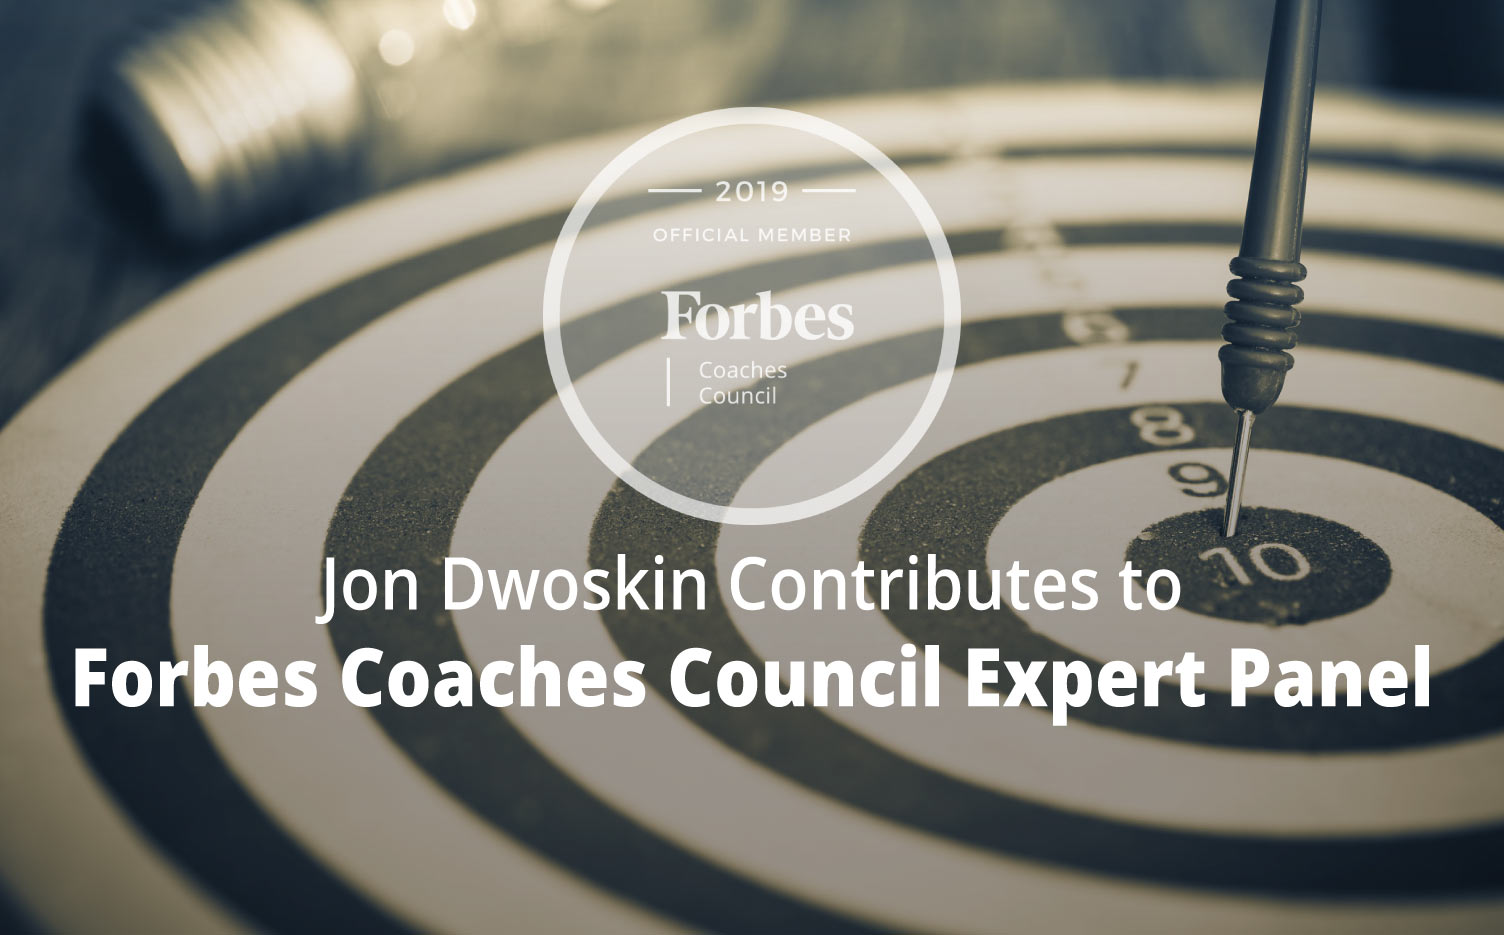 Jon Dwoskin Contributes to Forbes Coaches Council Expert Panel: 15 Ways for Leaders to Give Guidance Without Micromanaging